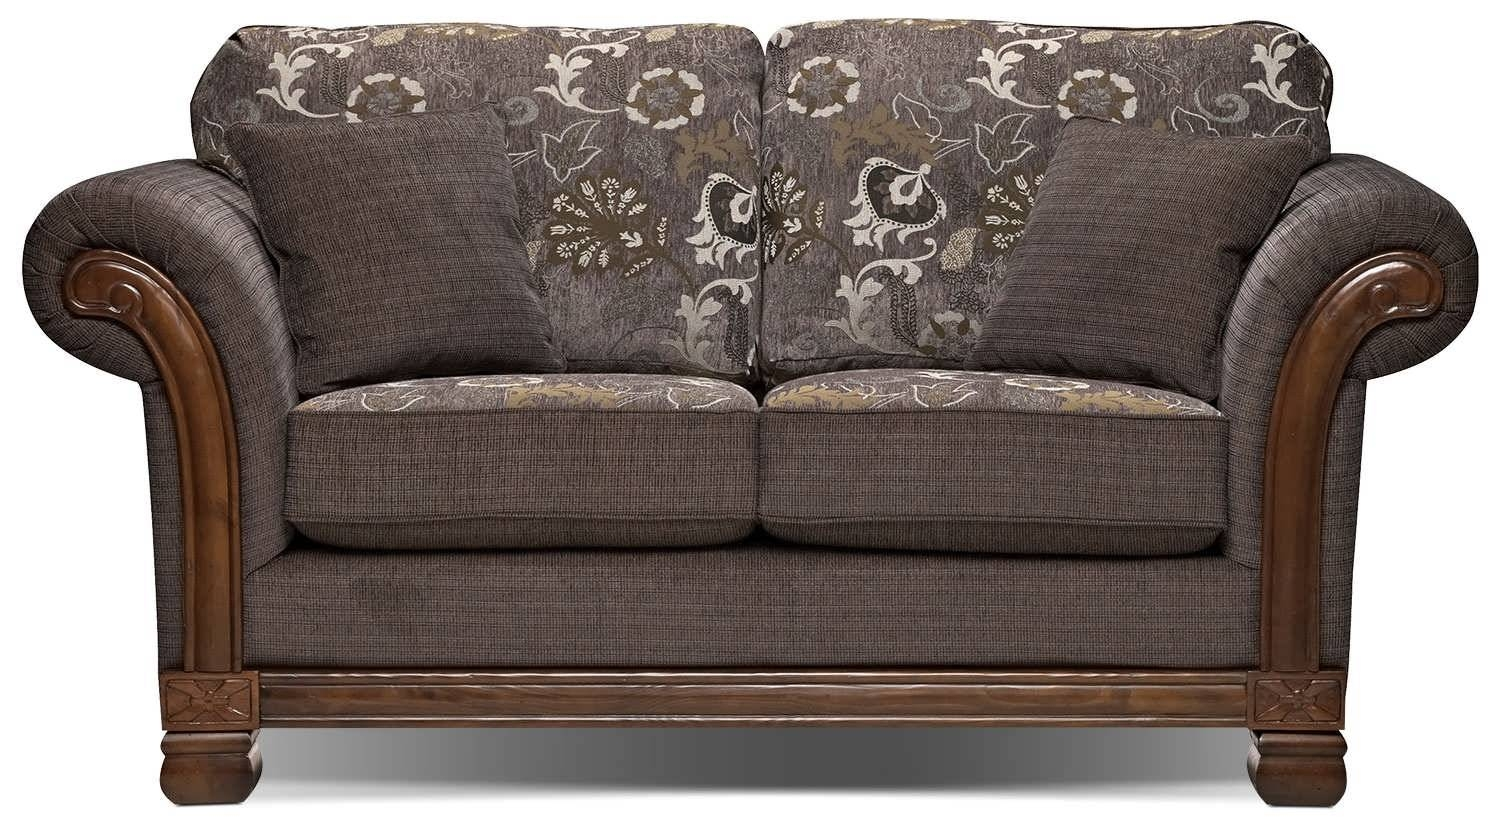 Sofa : Couch Fabric Sofa Legs Sofa Table Clayton Marcus Sofa Couch pertaining to Clayton Marcus Sofas (Image 15 of 15)